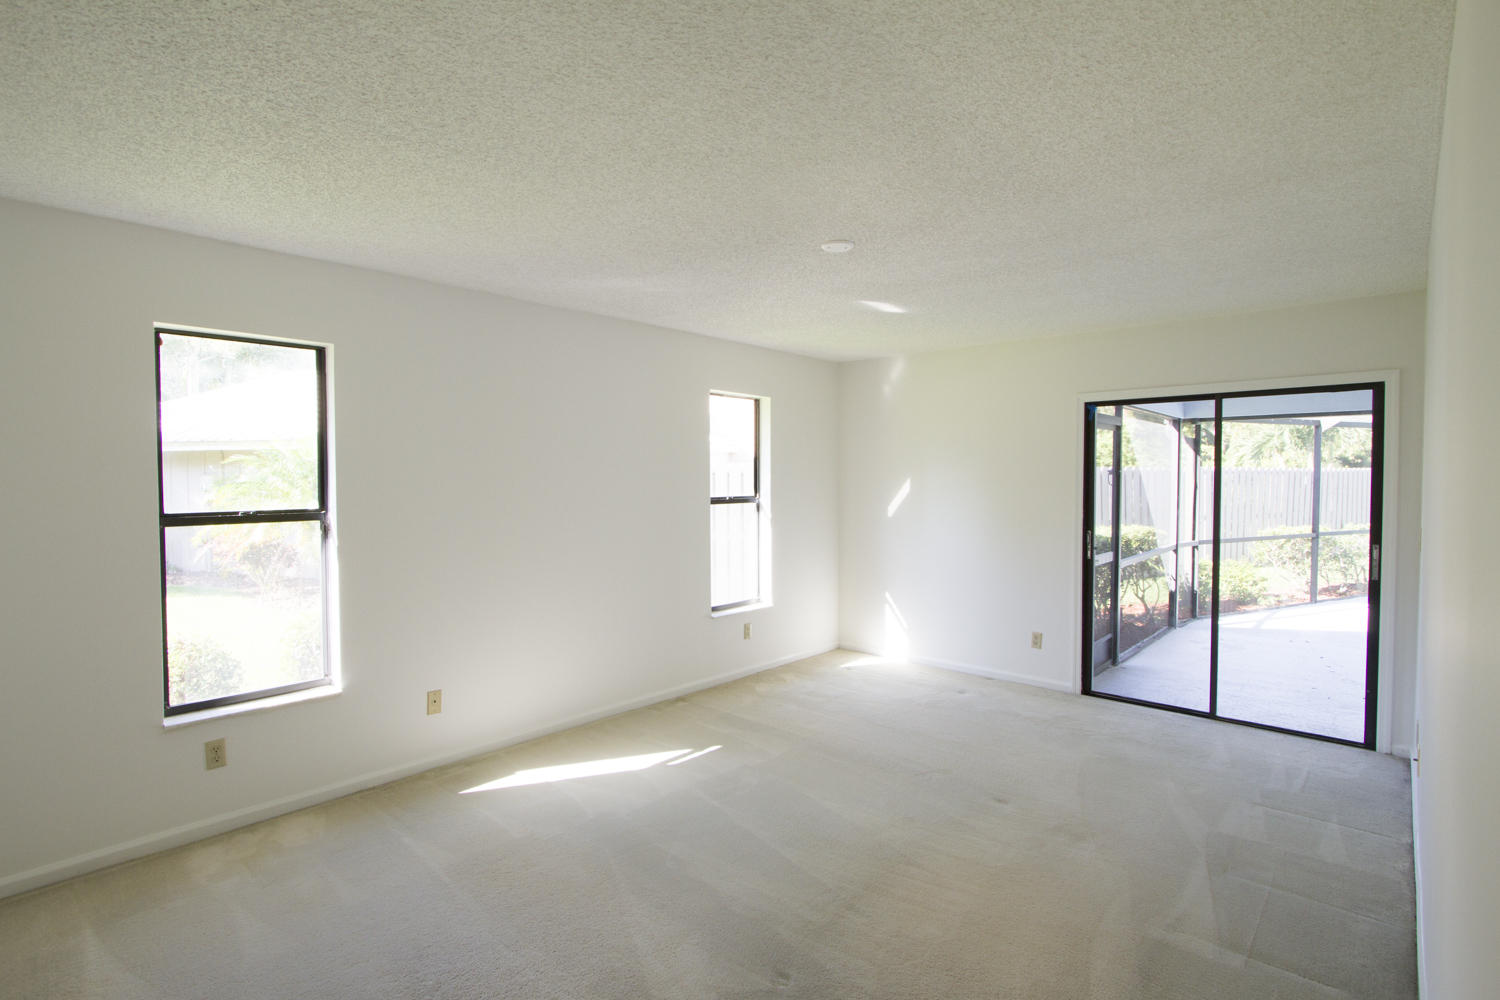 18920 Misty Lake Drive  - Abacoa Homes - photo 15